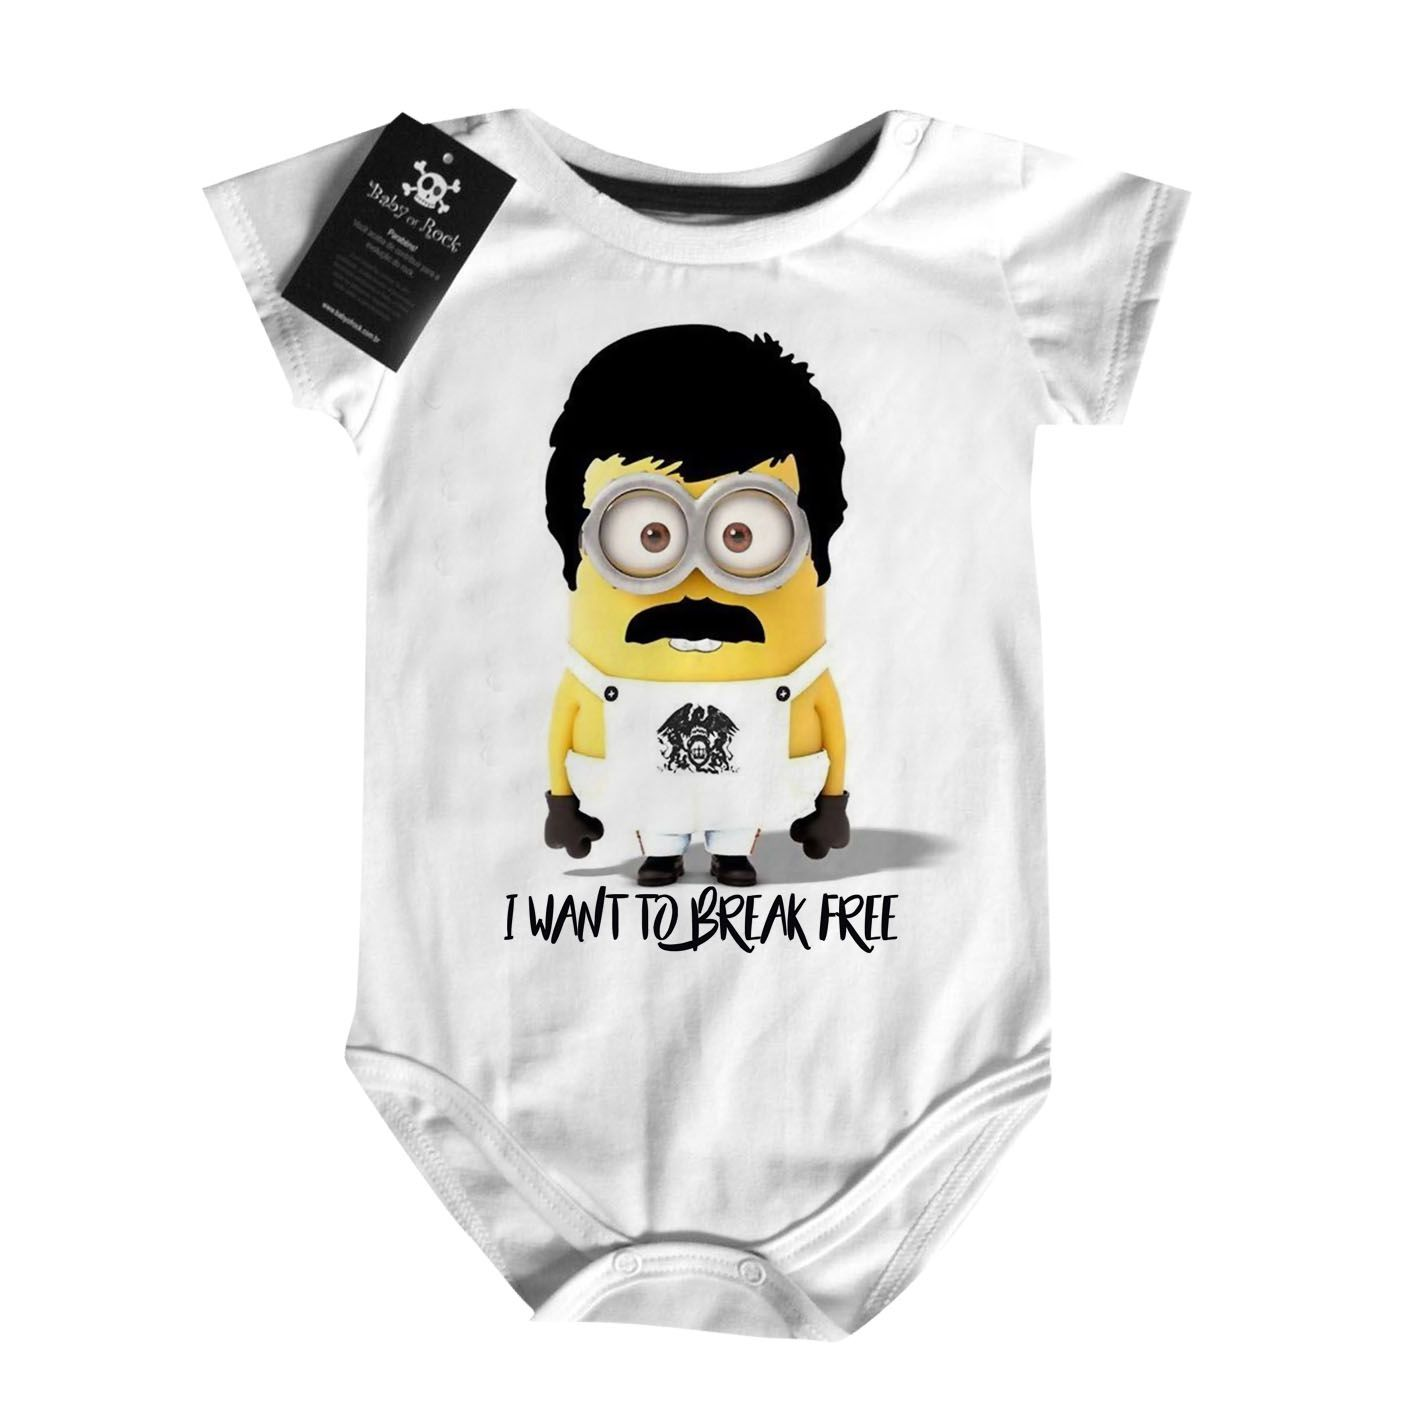 Body Bebe Rock Minions Freddy Mercury Queen  - Caricato - White  - Baby Monster S/A